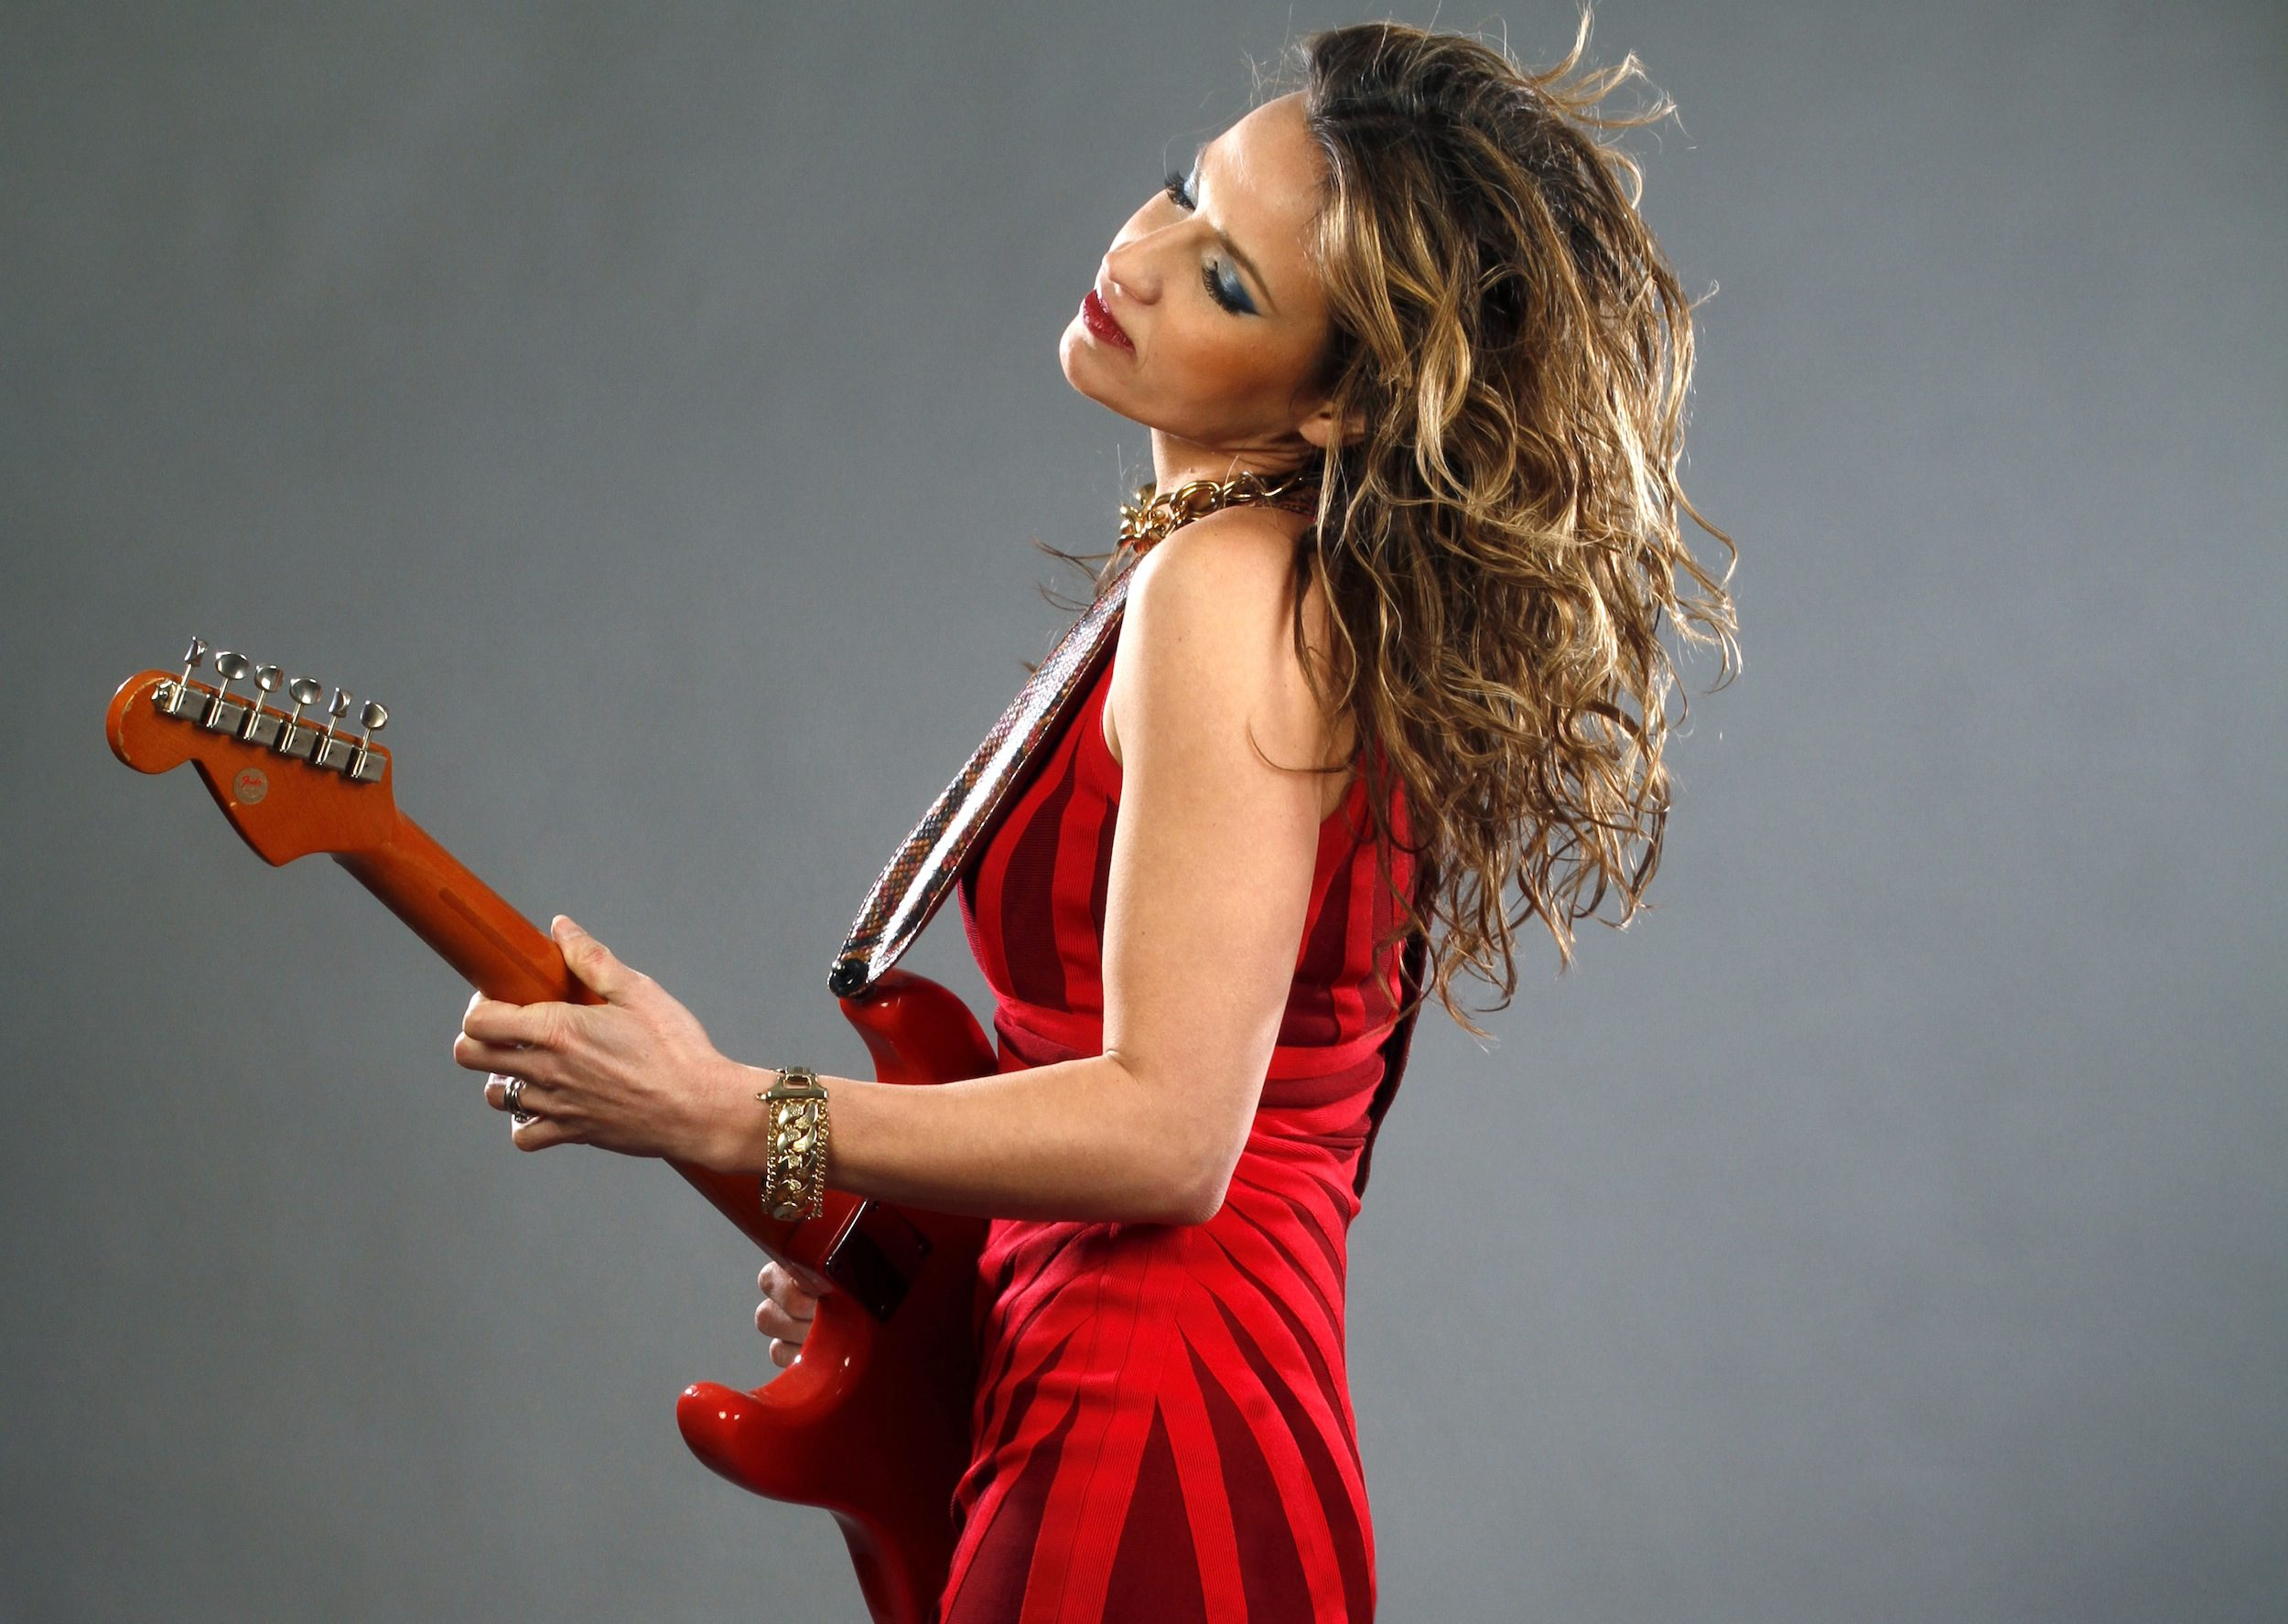 World-renowned Ana Popovic brings her blues guitar sounds to